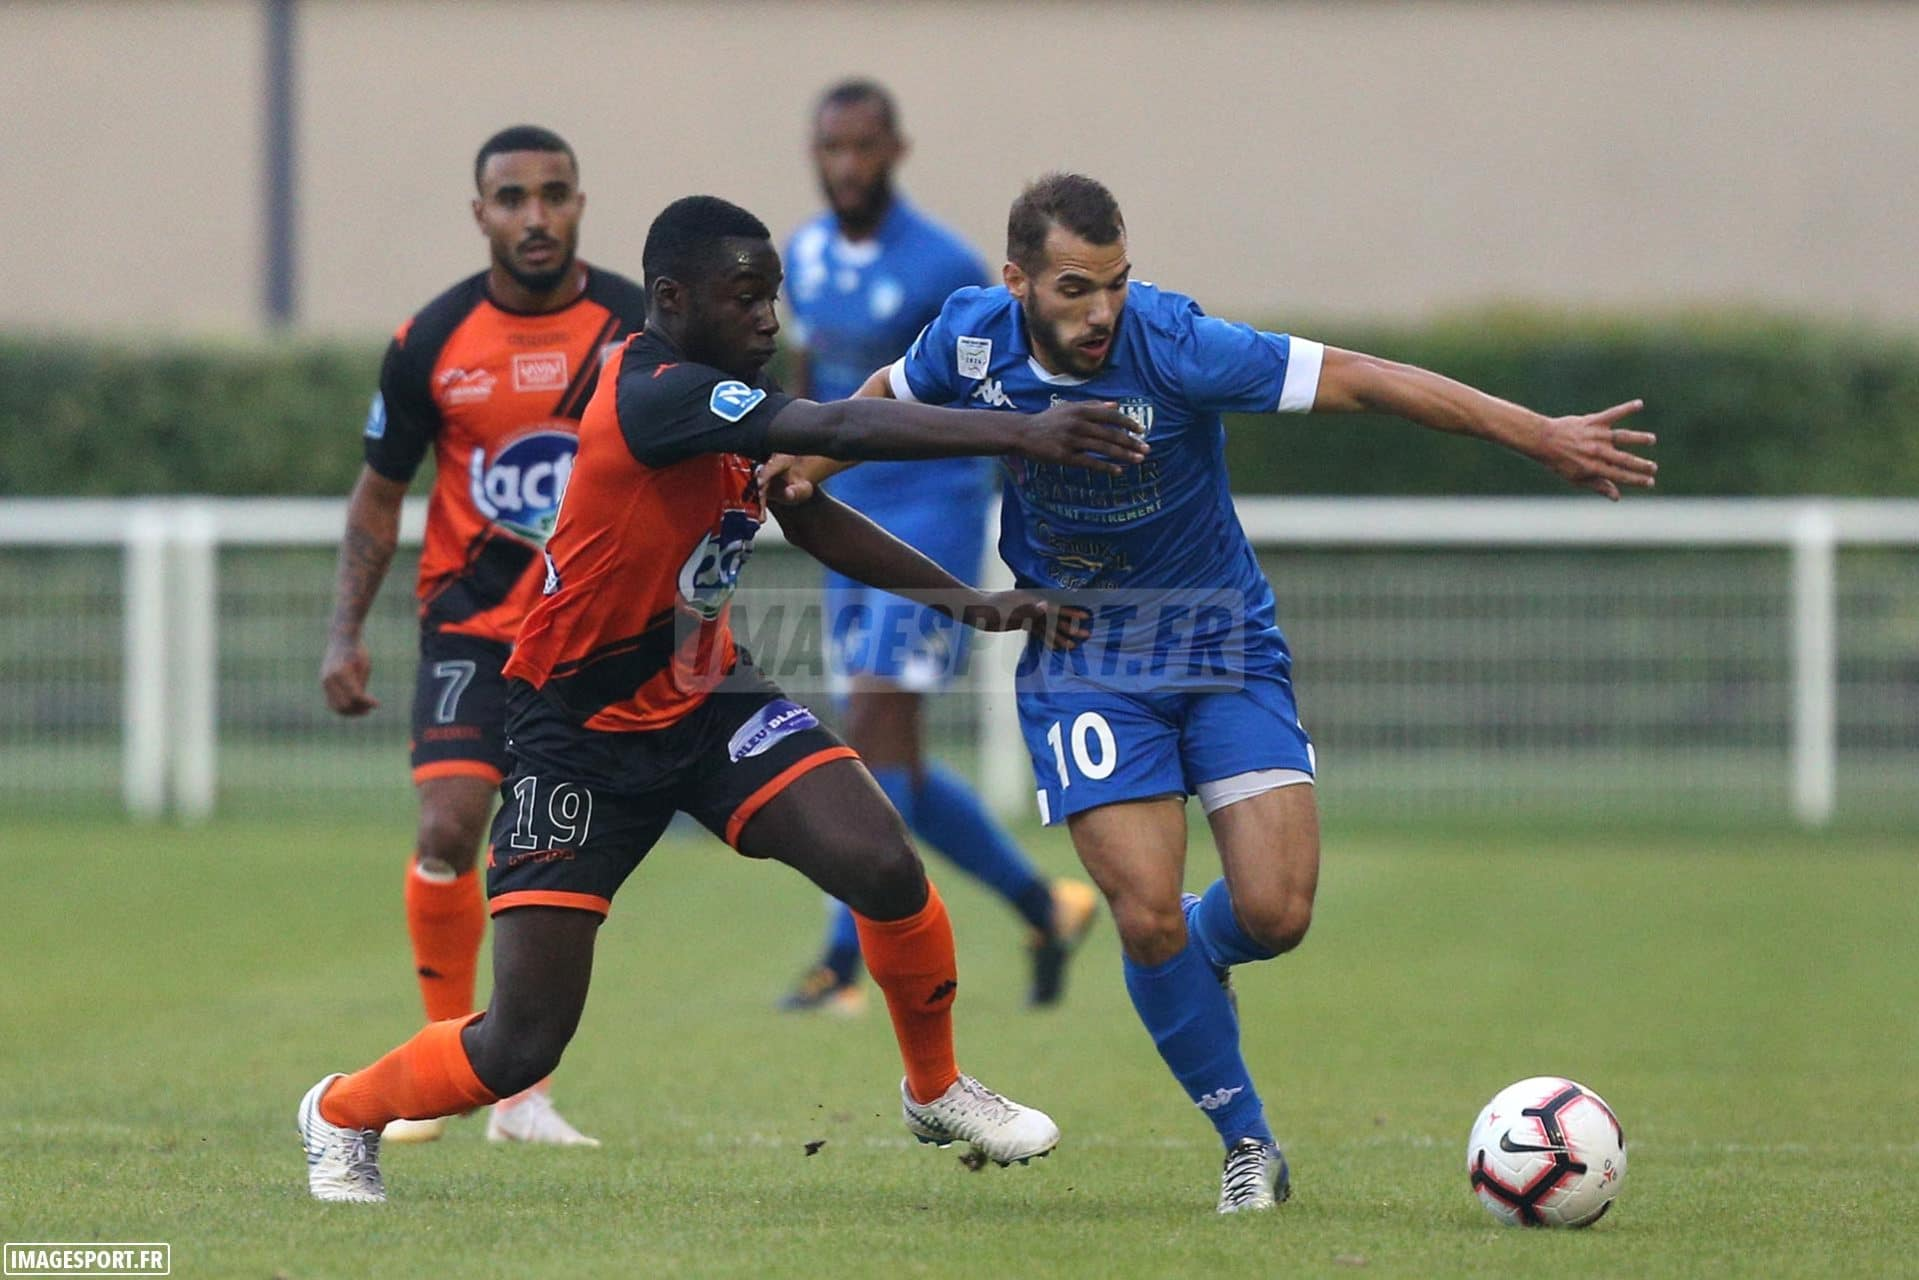 18-19-national-j04-drancy-laval_11